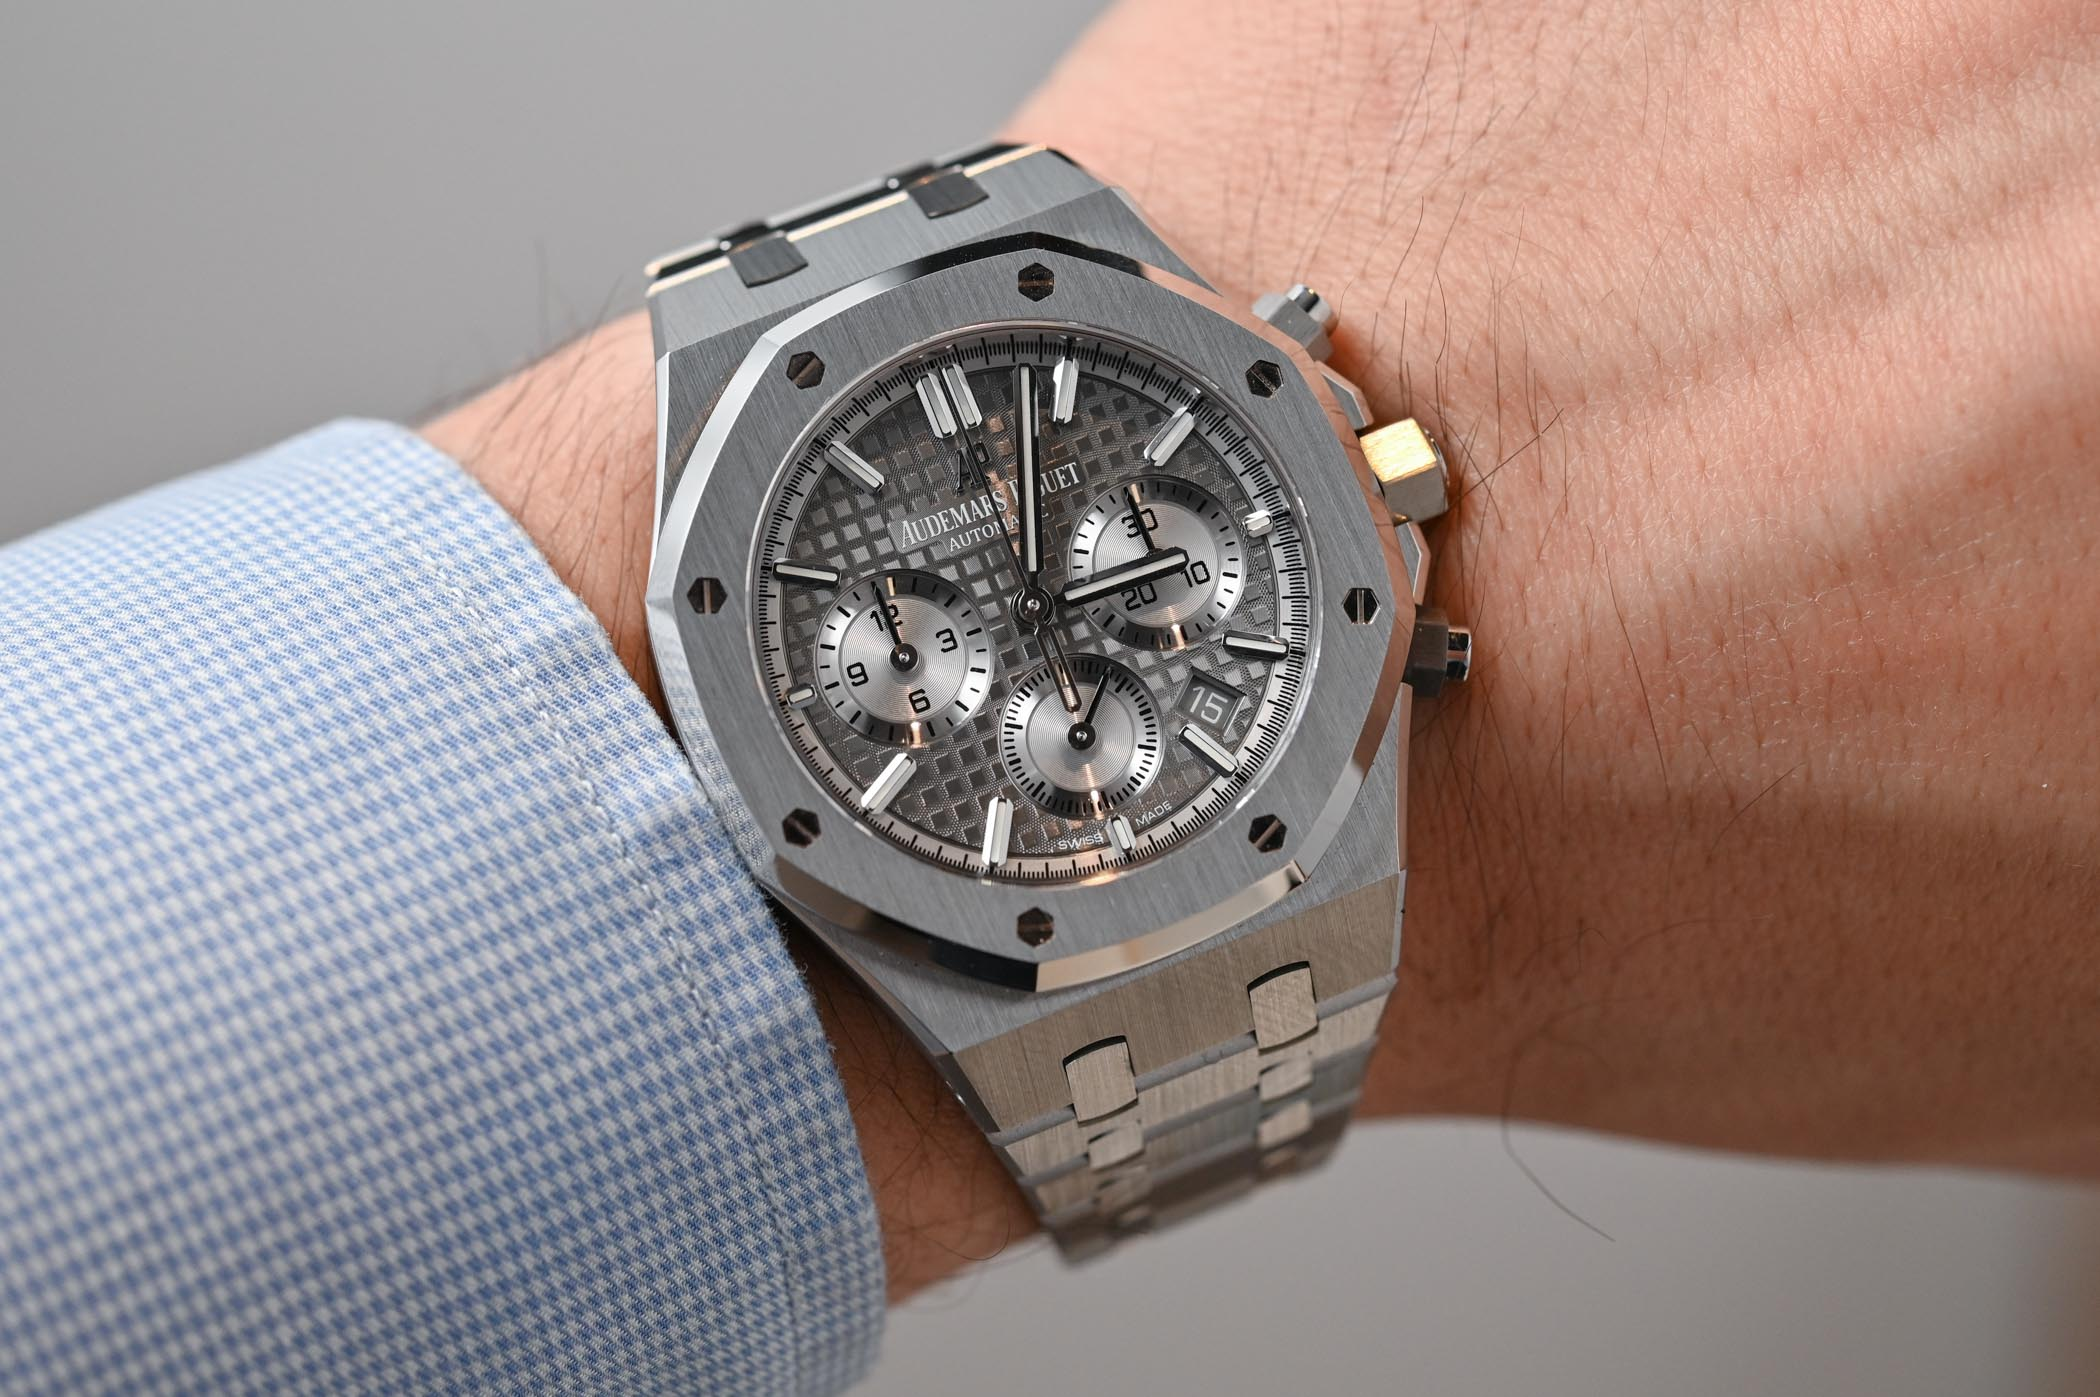 f64ae1aab59fd Hands-On - Audemars Piguet Royal Oak Selfwinding Chronograph 38mm ...